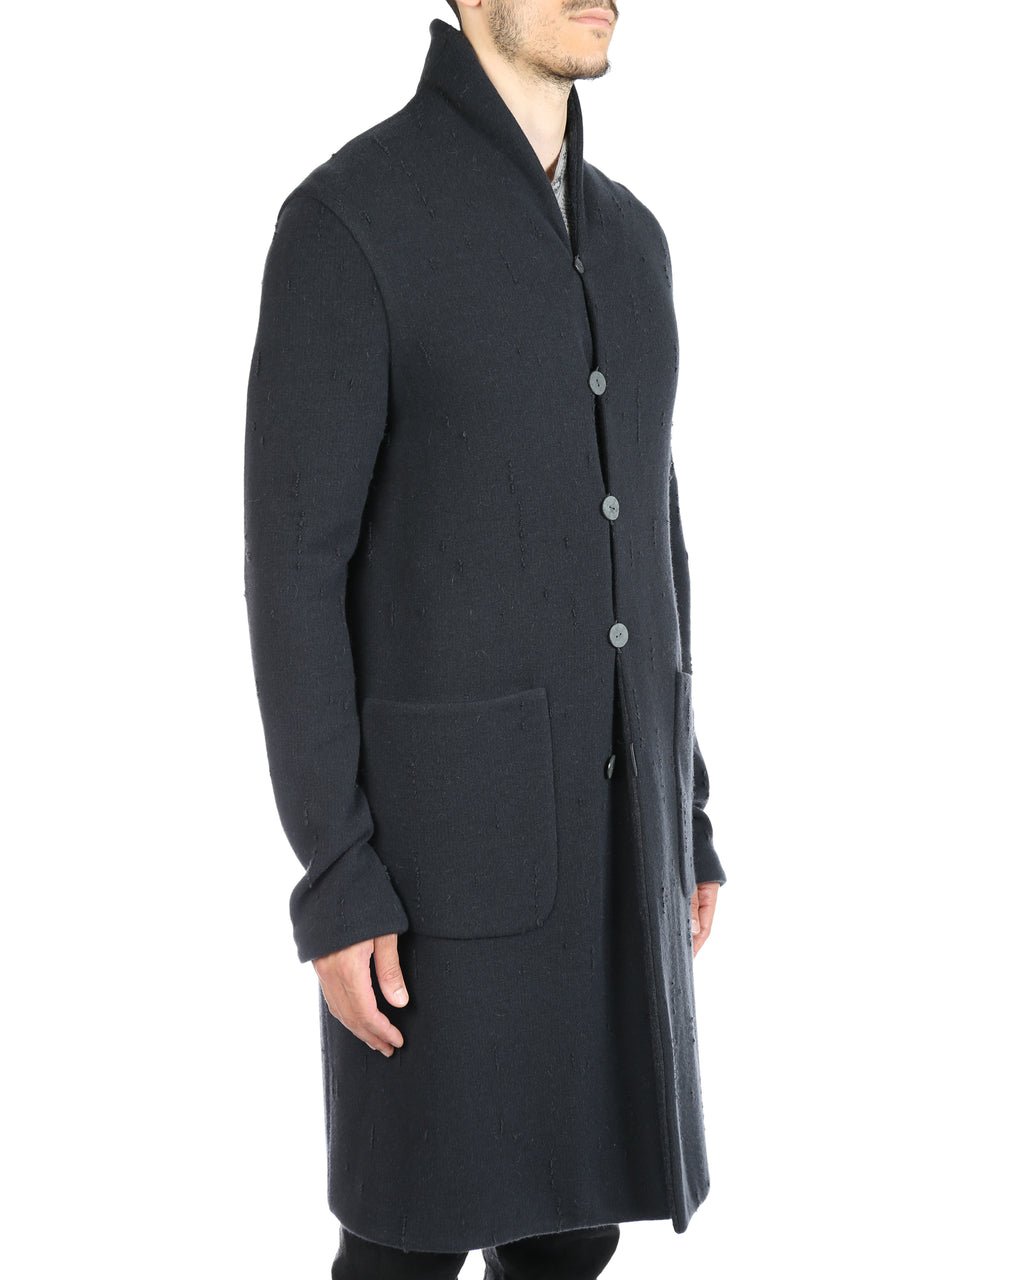 LABEL UNDER CONSTRUCTION MEN REVERSIBLE RAINDROPS COAT